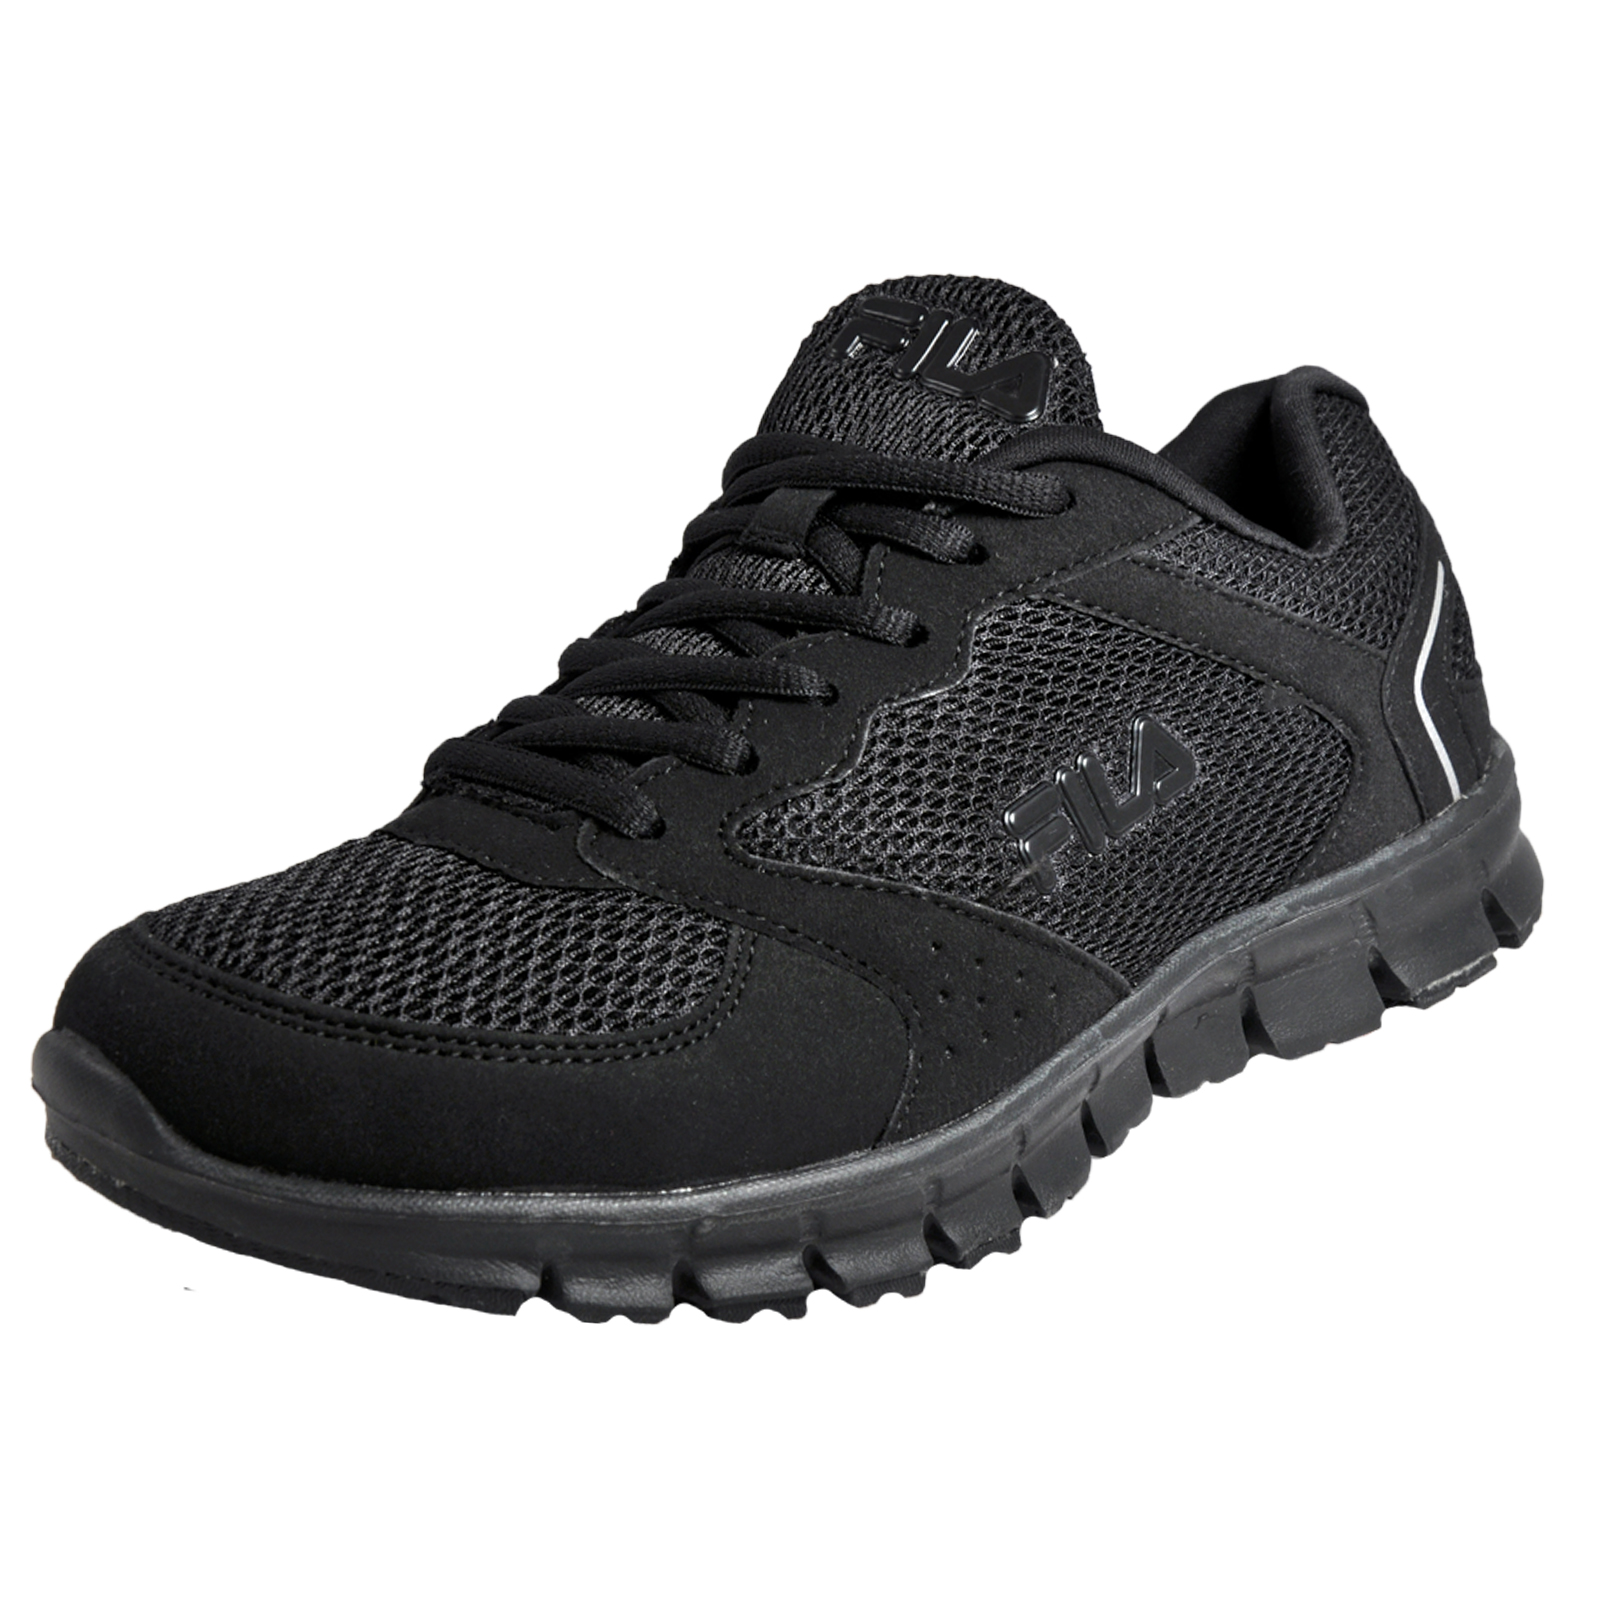 fila comet run low mens running shoes fitness trainers